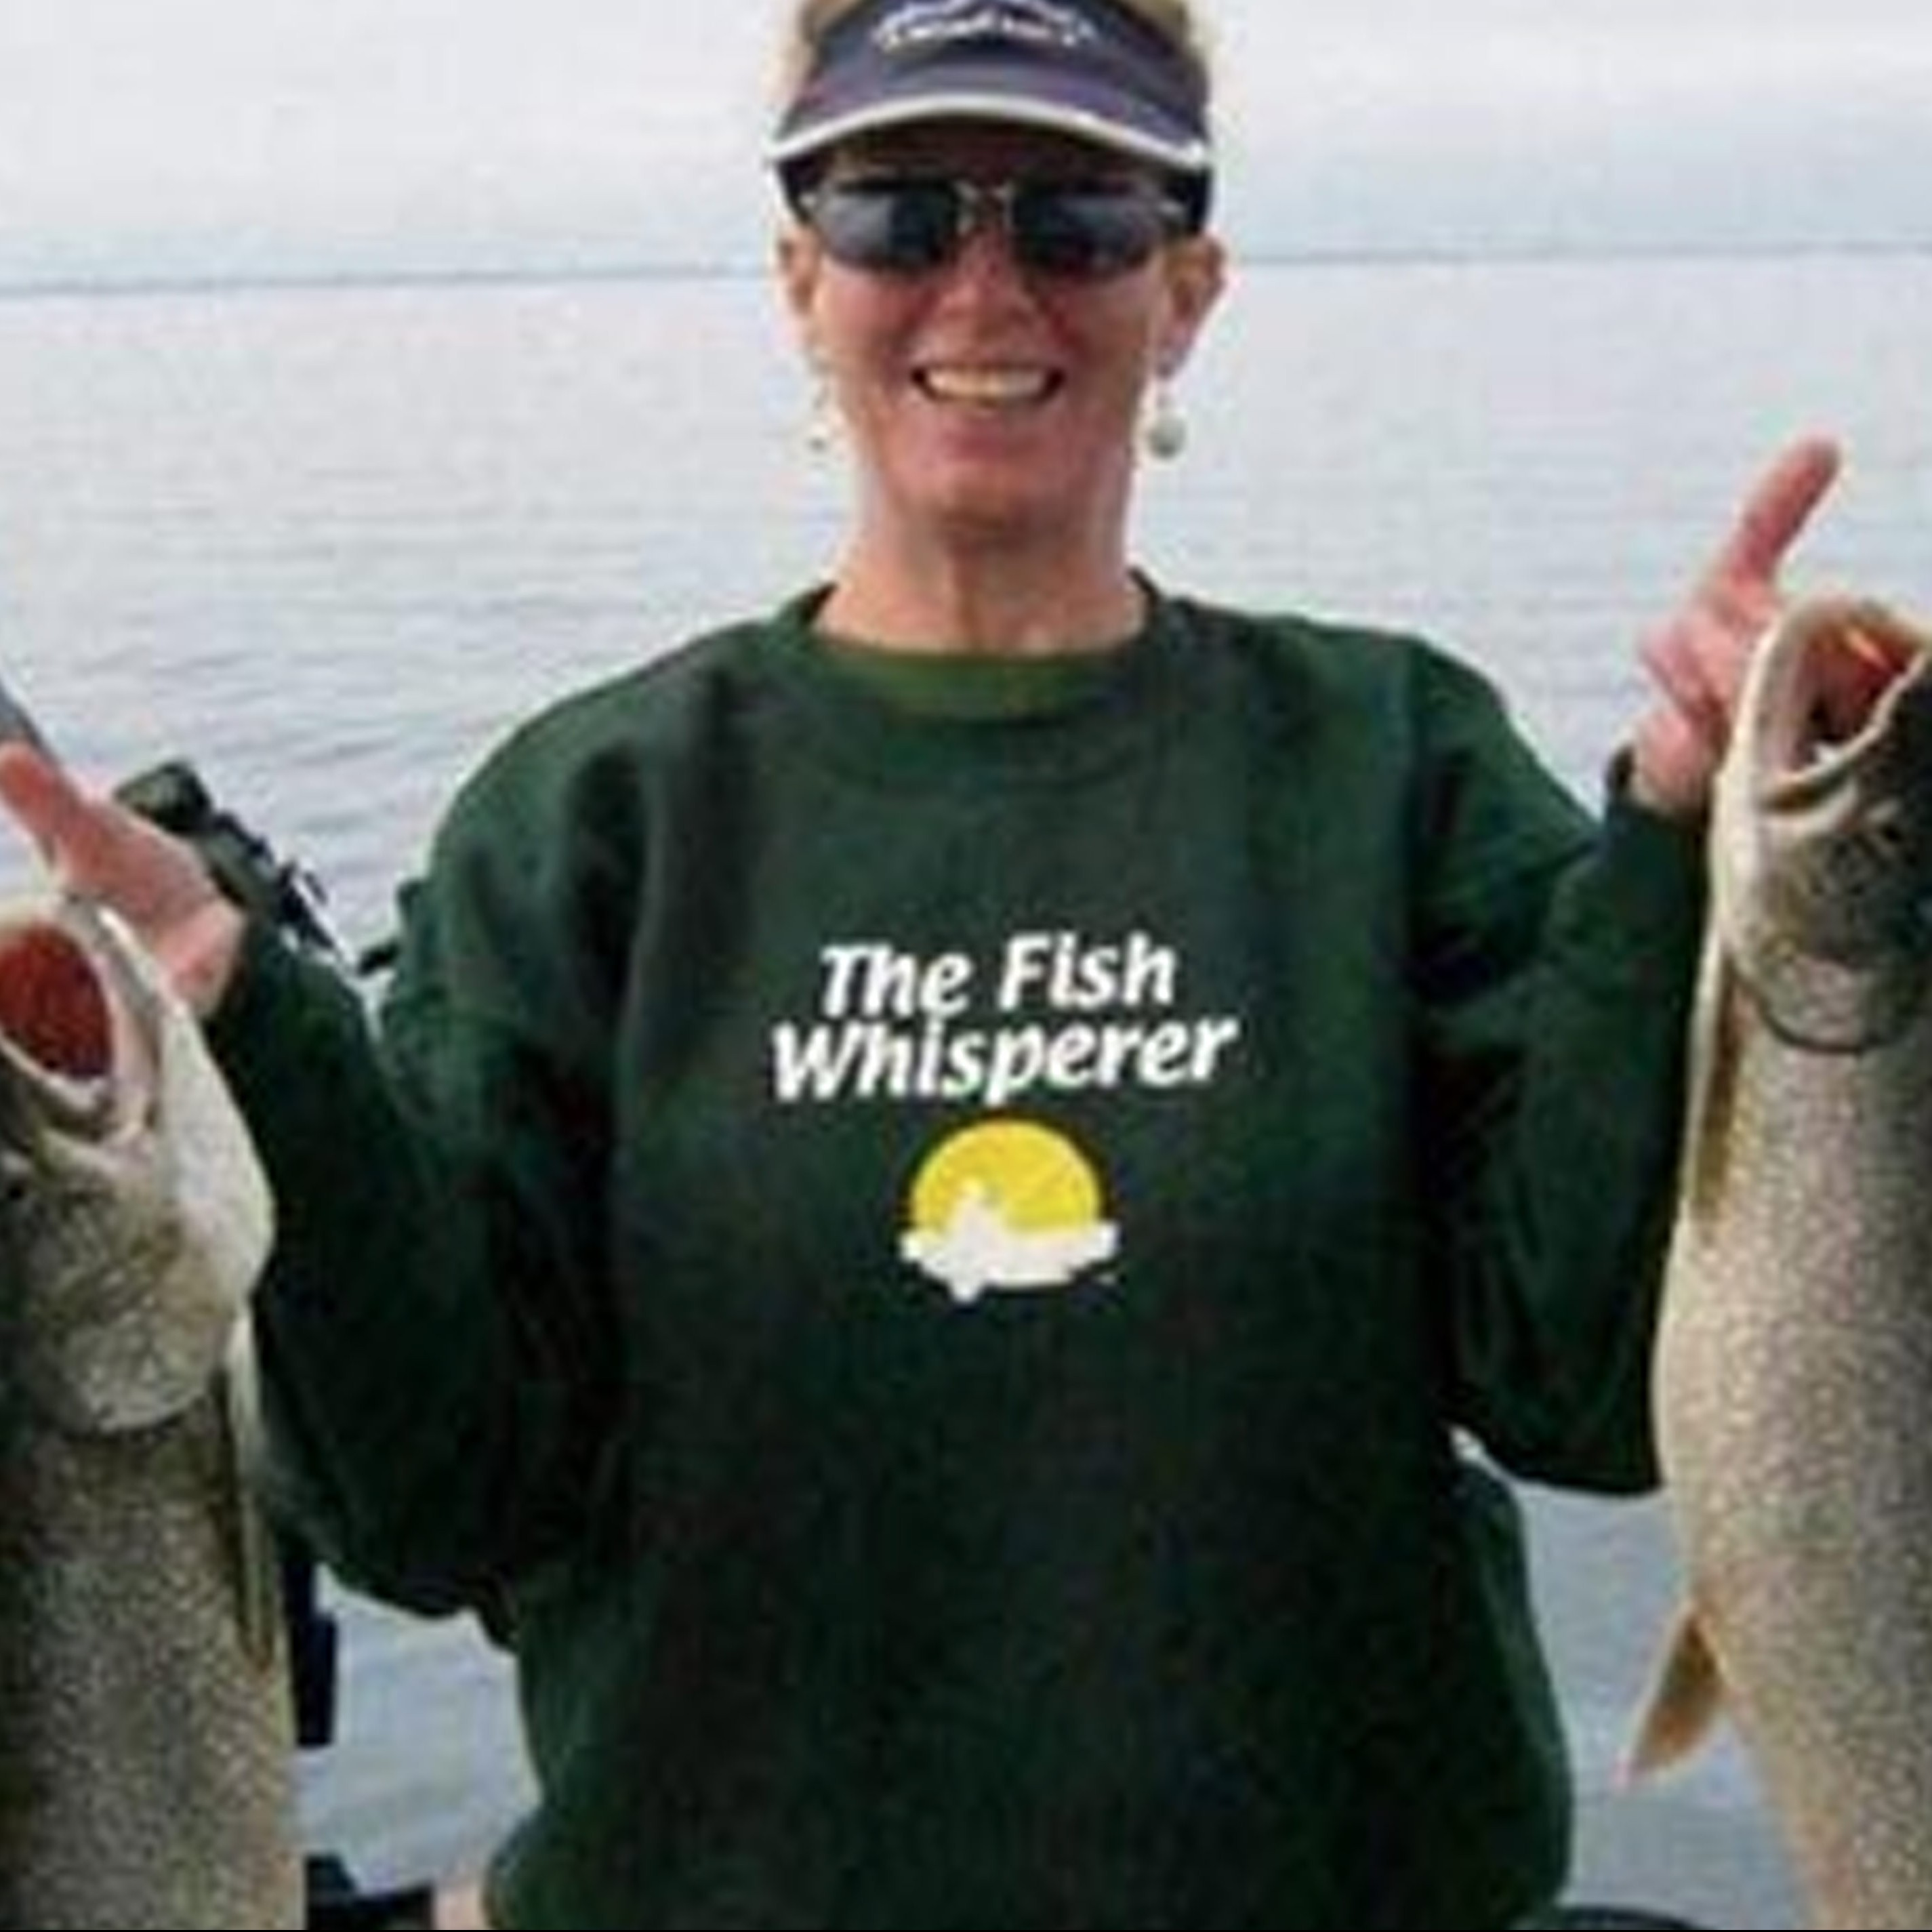 Charter Fishing Duluth Mn Of Duluth Charter Fishing Guides In Duluth Minnesota